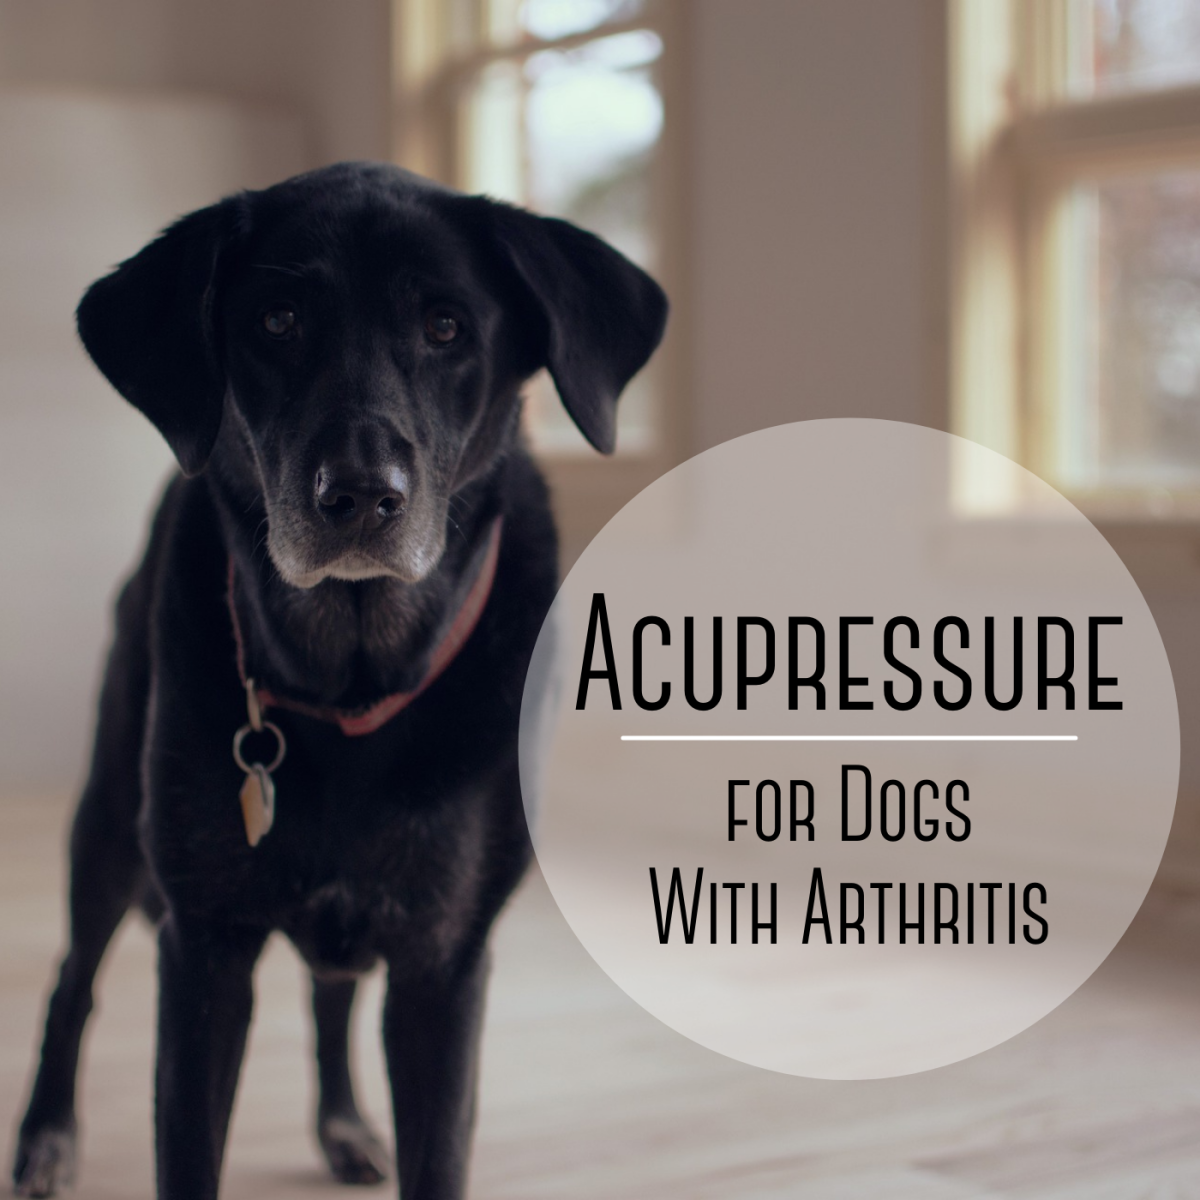 Acupressure can help some older dogs deal with the pain of arthritis.